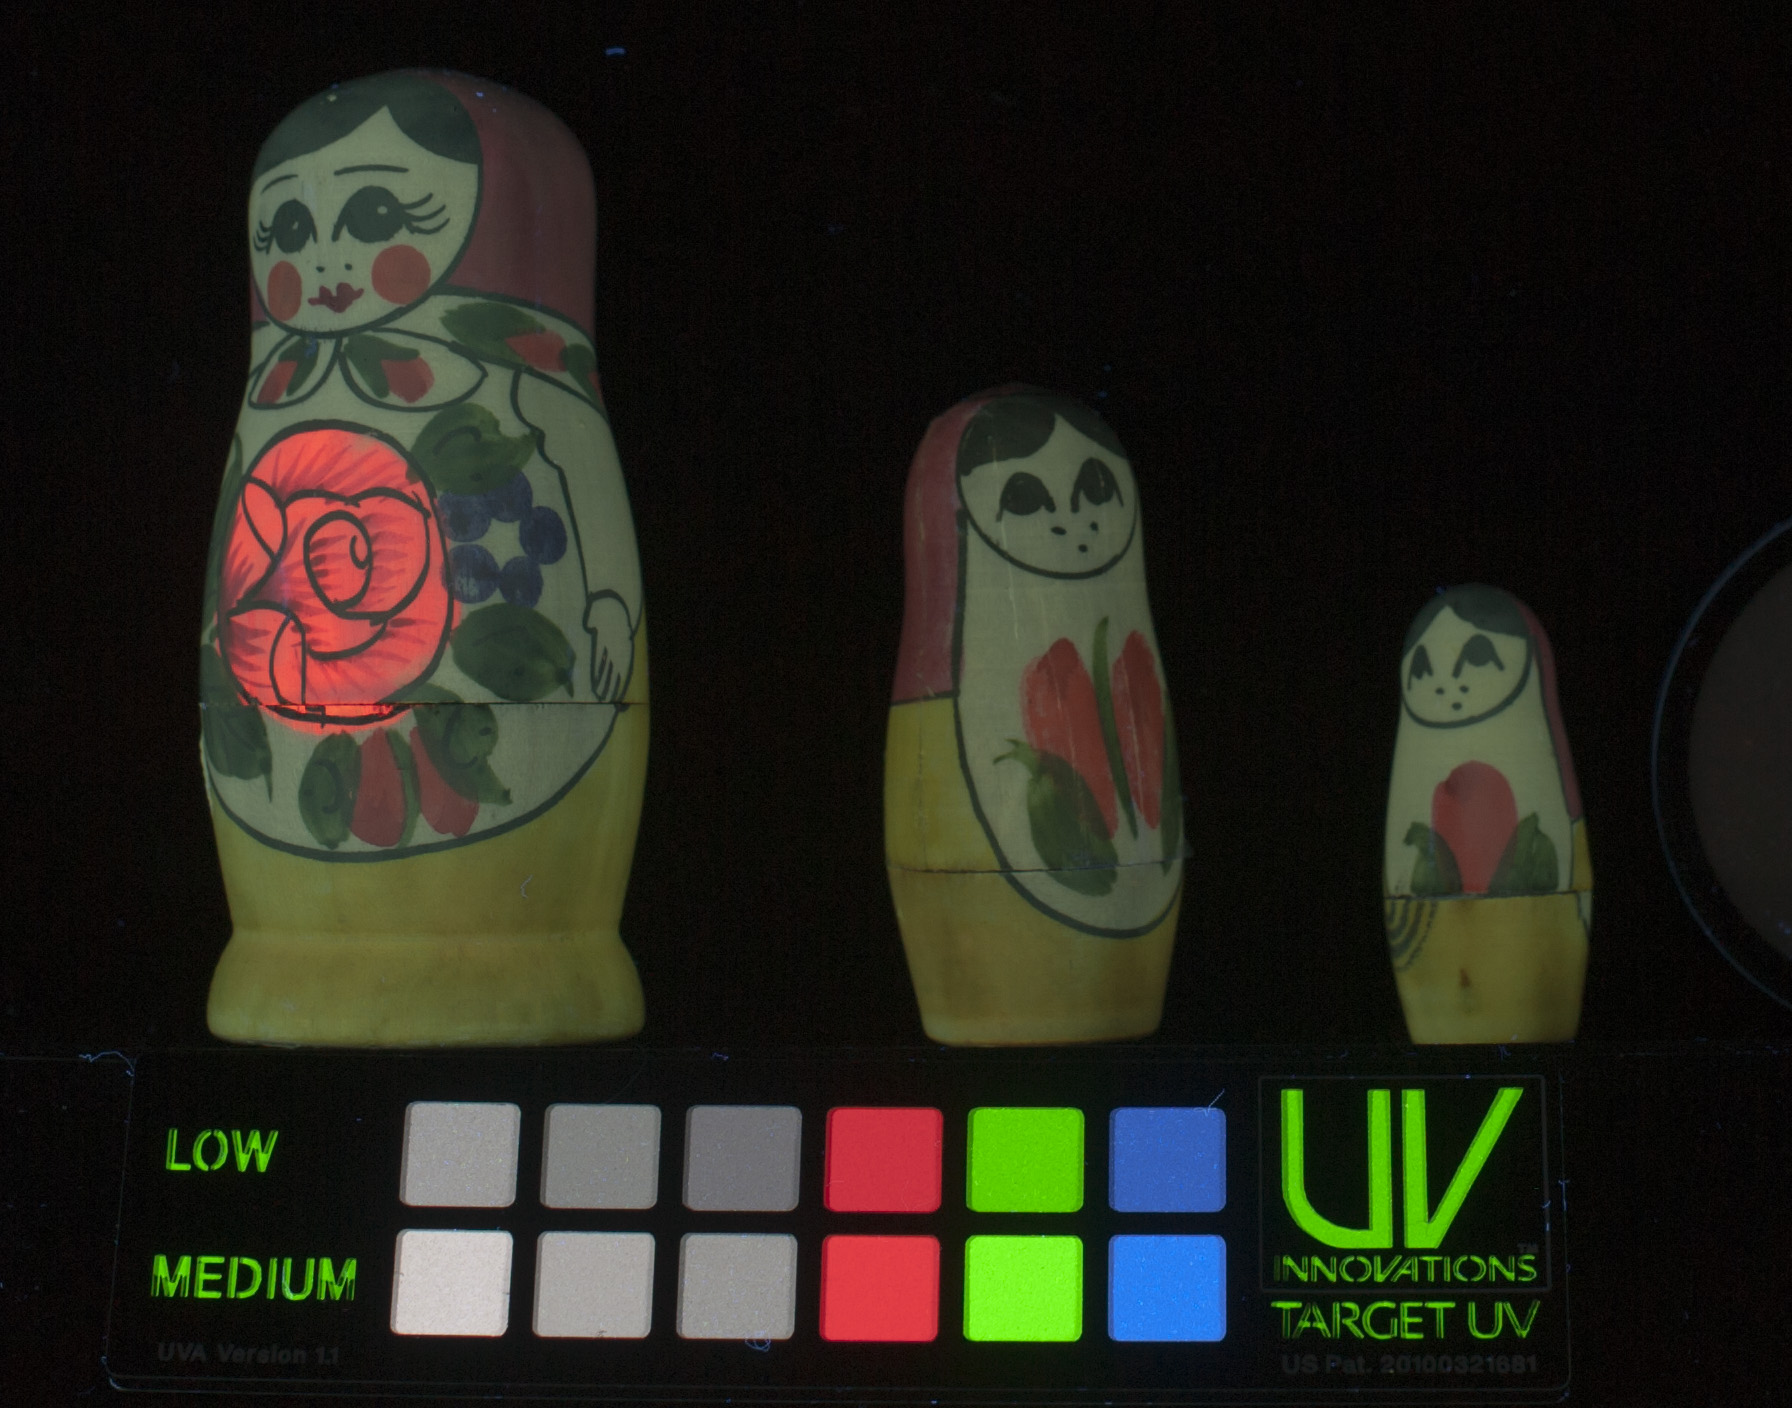 UV-vis, nesting dolls